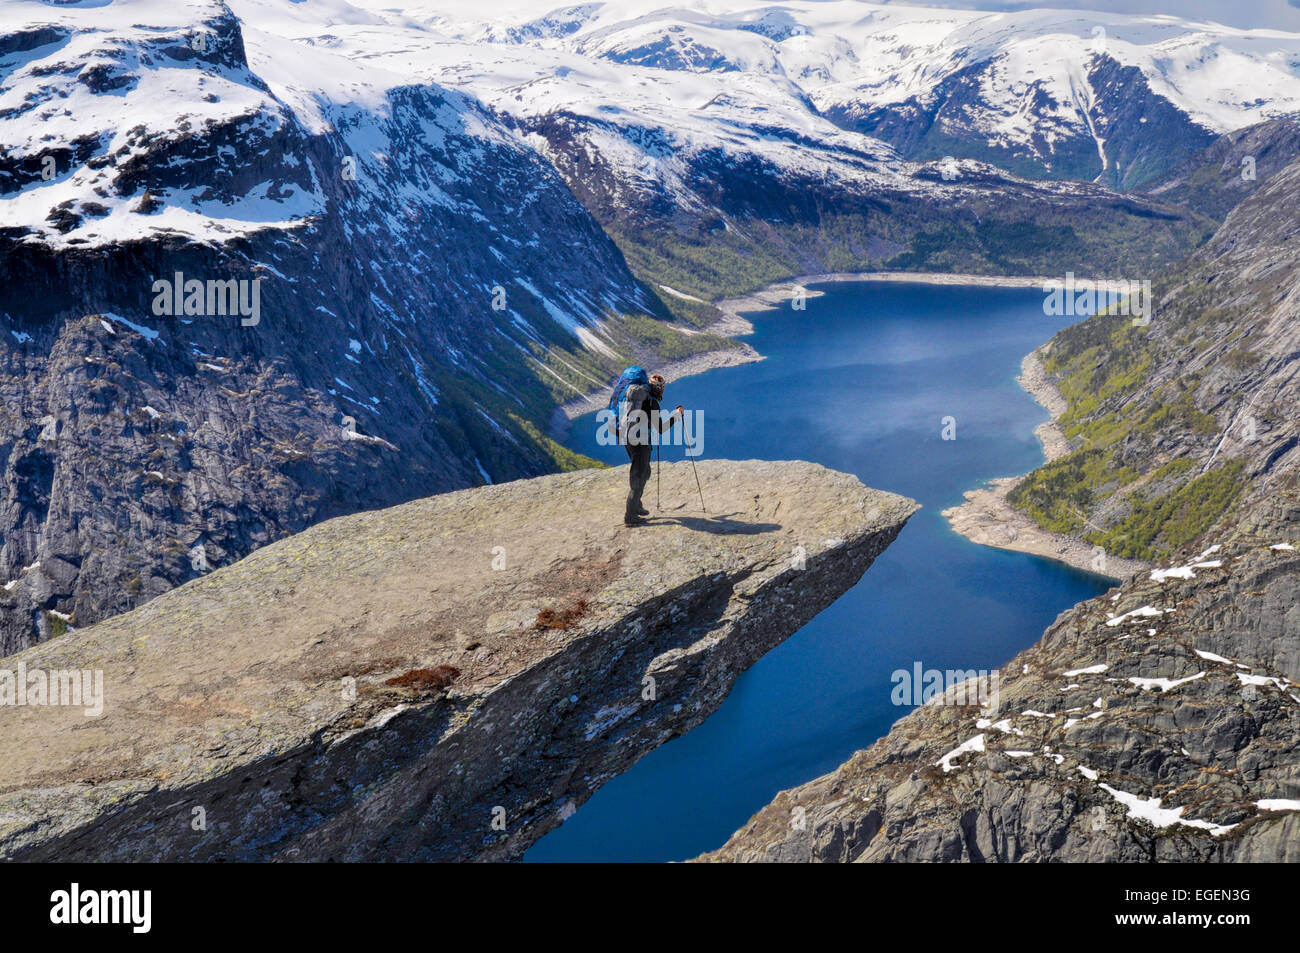 Hiker with backpack on Trolltunga rock high above scenic fjord in Norway - Stock Image